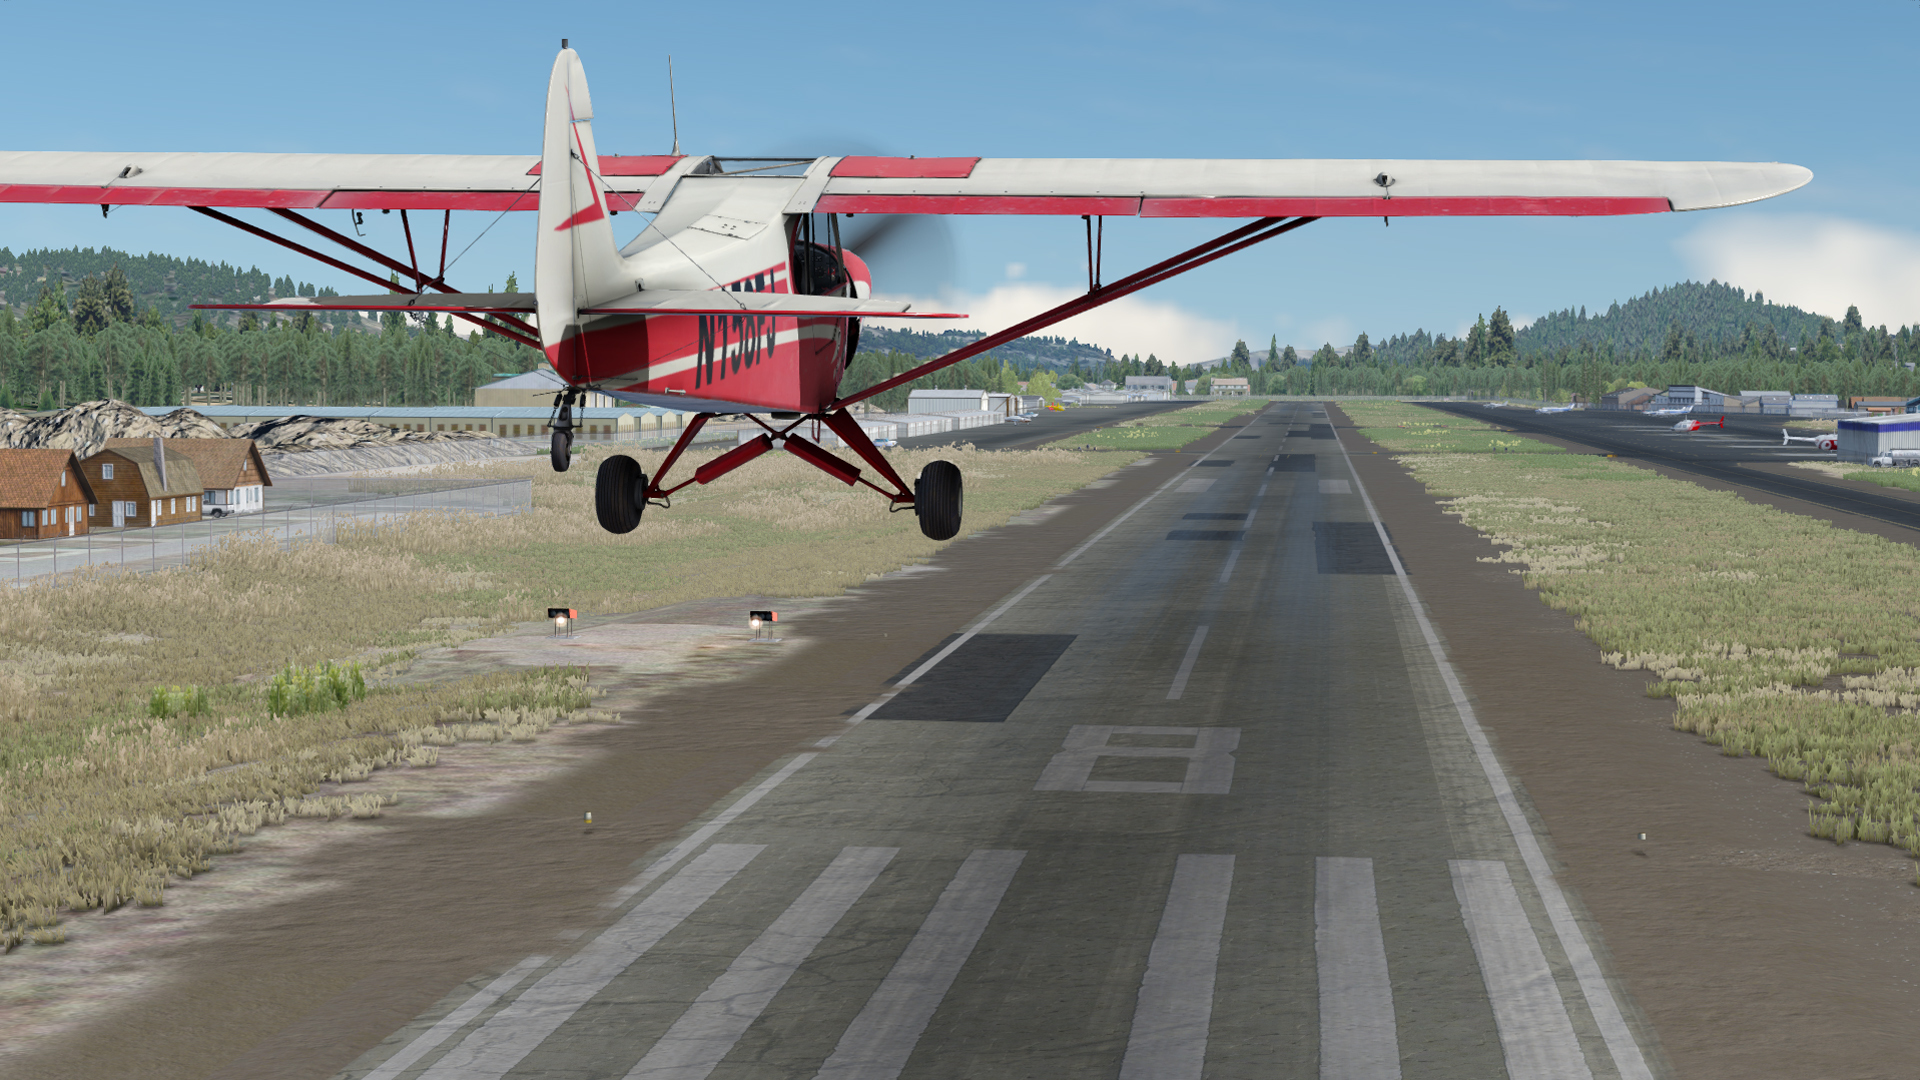 Dovetail games flight school manual - If You Want To Find Out More About Big Bear Airport Then Head Over To The Store Page Or Check Out The Developer Diary